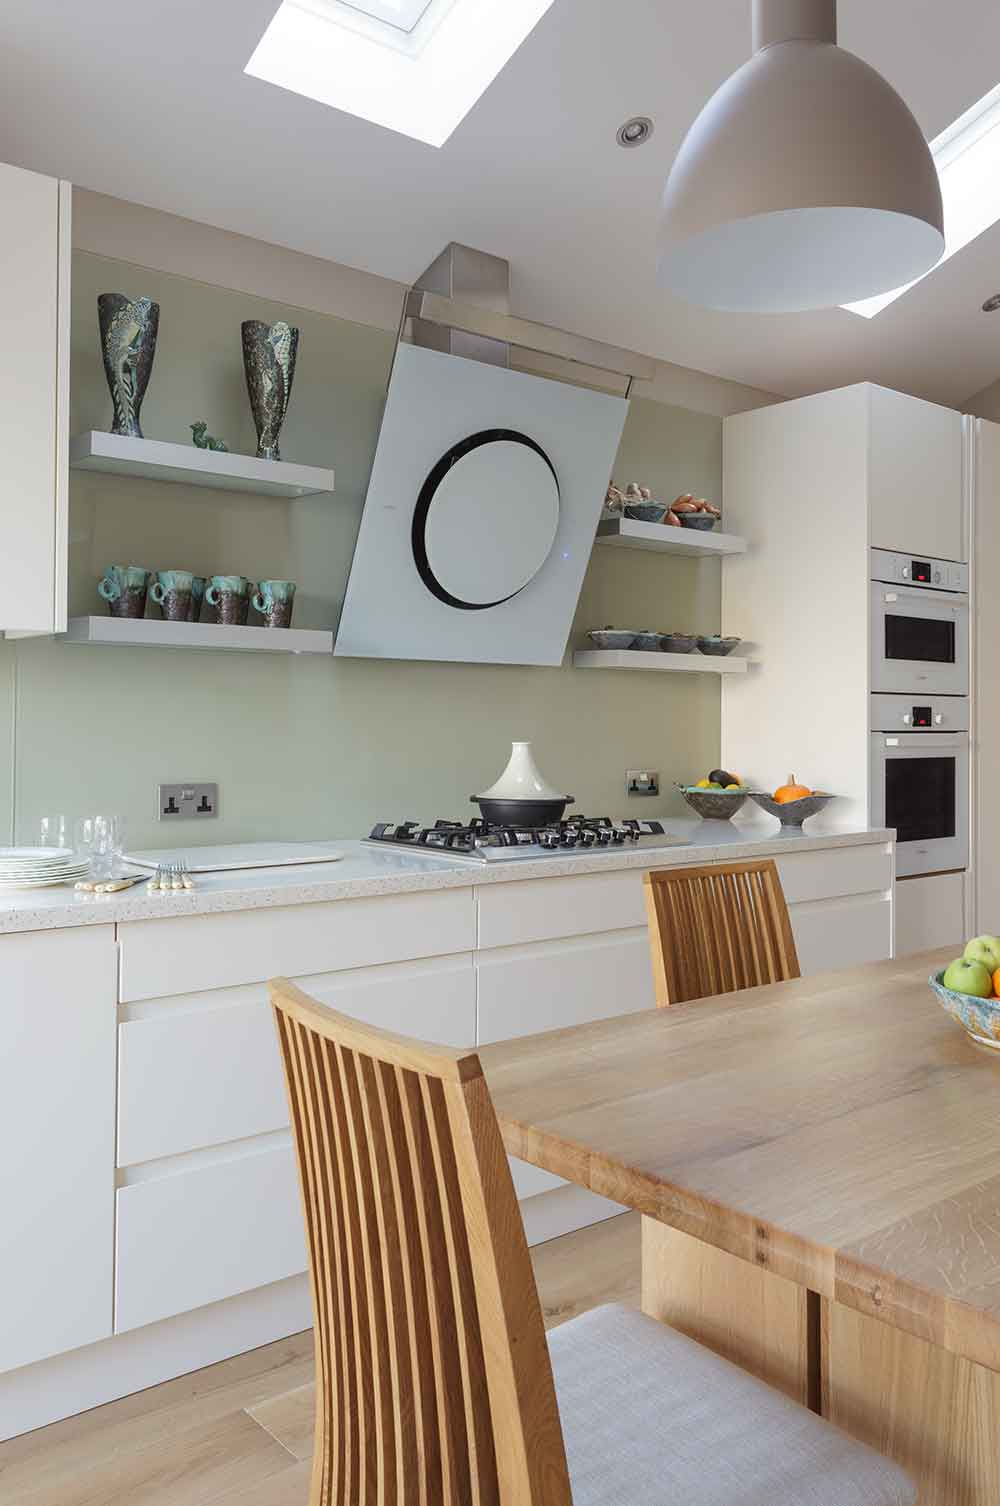 Modern compact bespoke kitchen with contemporary extractor fan